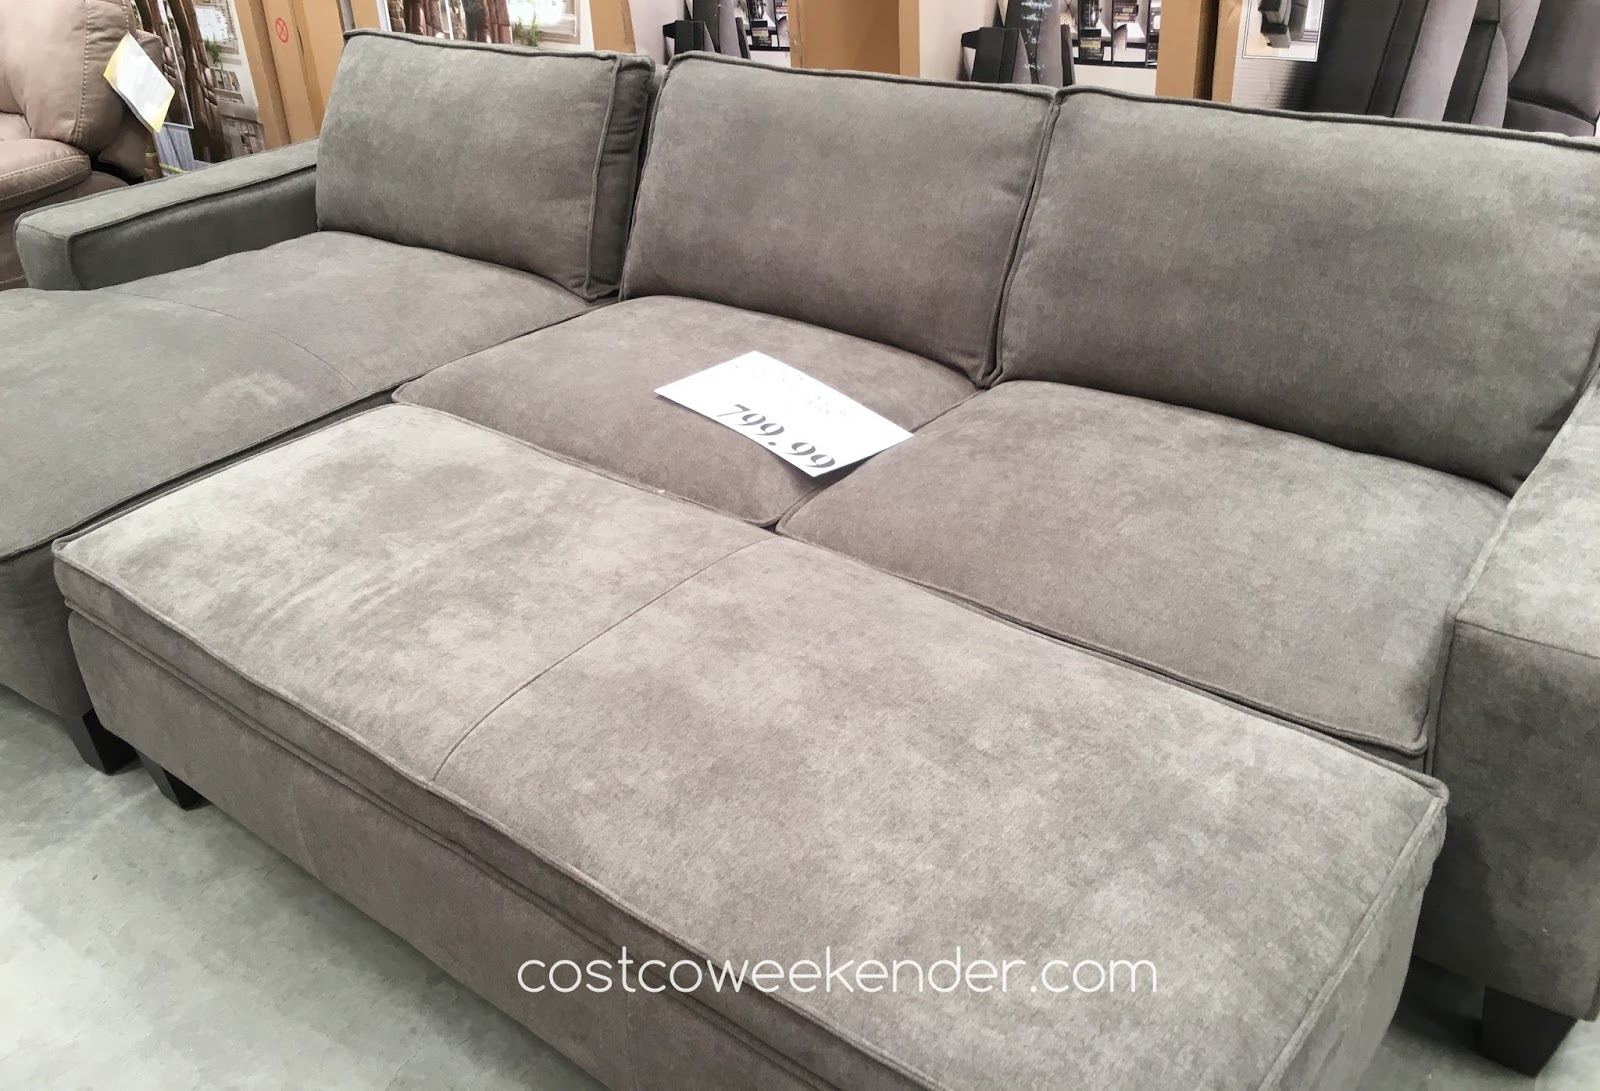 Chaise sofa with storage ottoman costco weekender for Chaise and ottoman